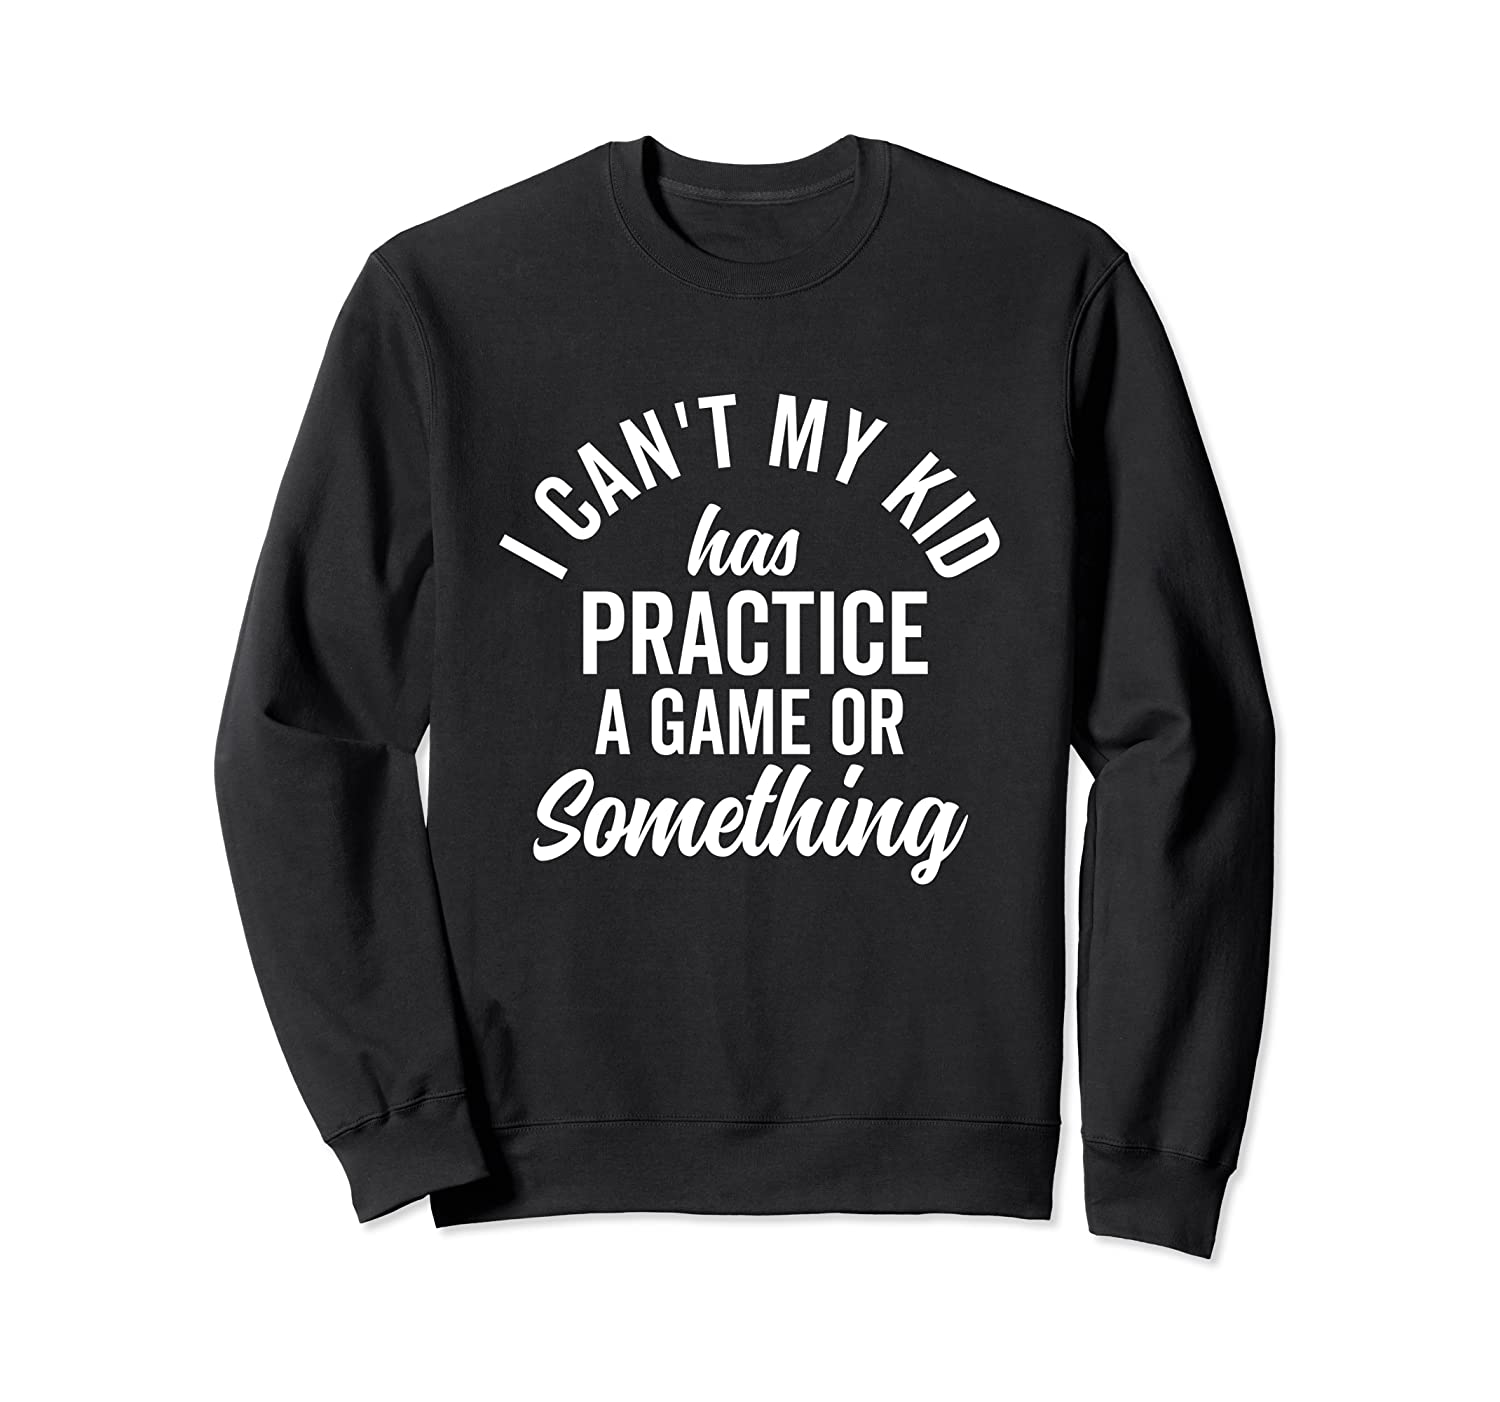 I Can't My Has Practice Shirt Busy Family Vintage (dark) Crewneck Sweater